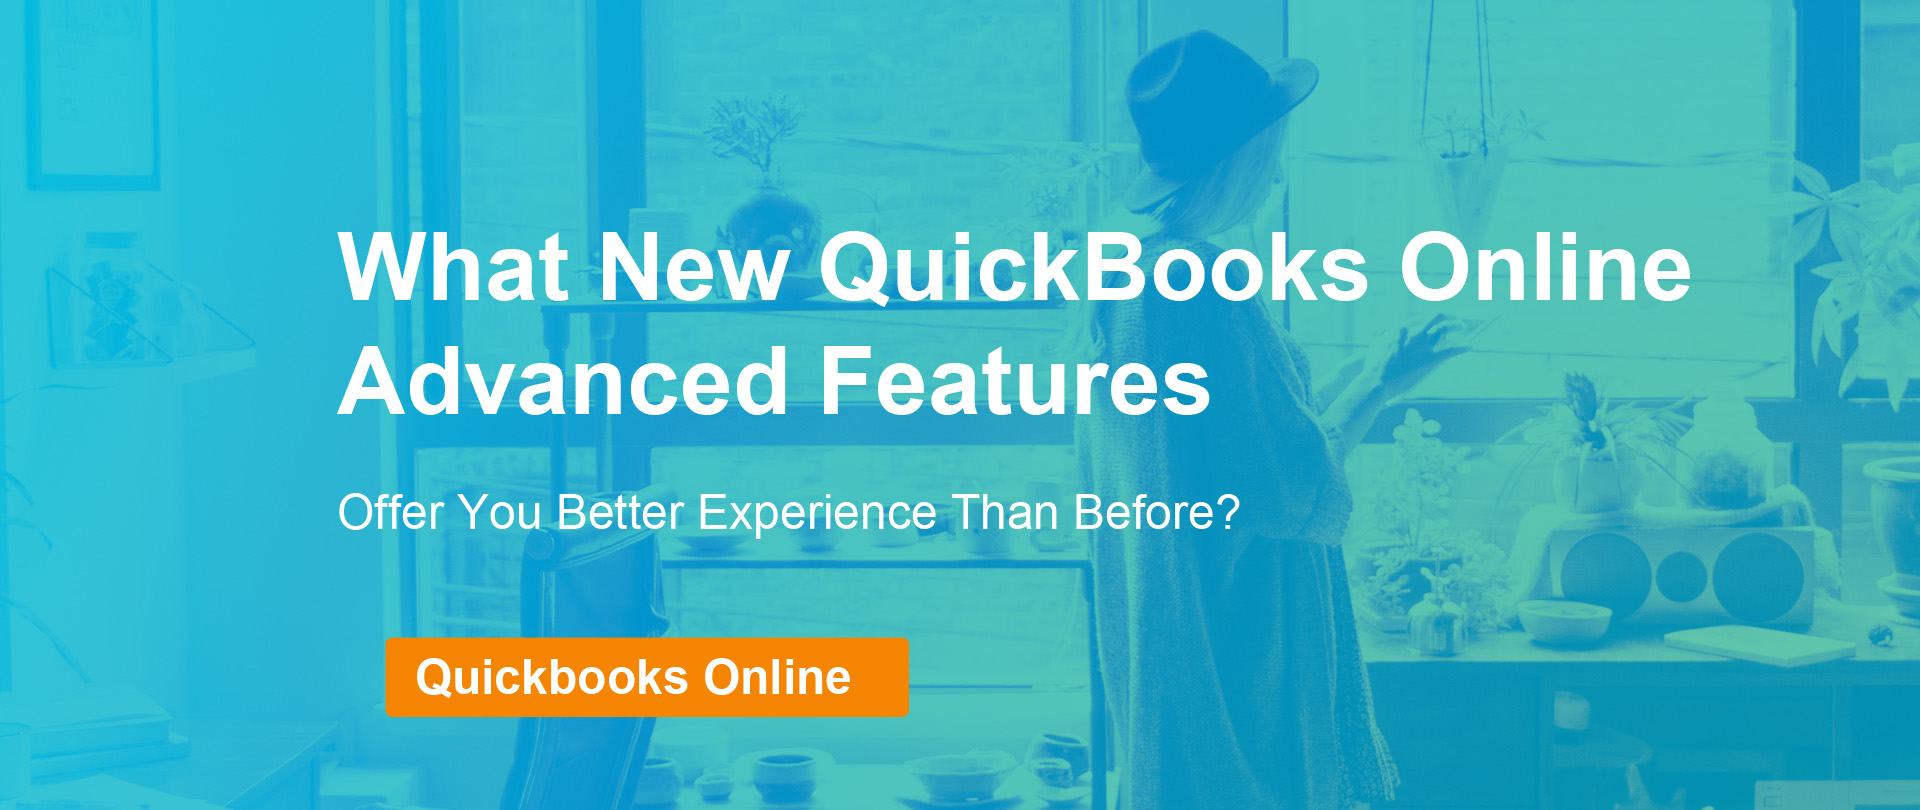 Pros And Cons Of QuickBooks Online